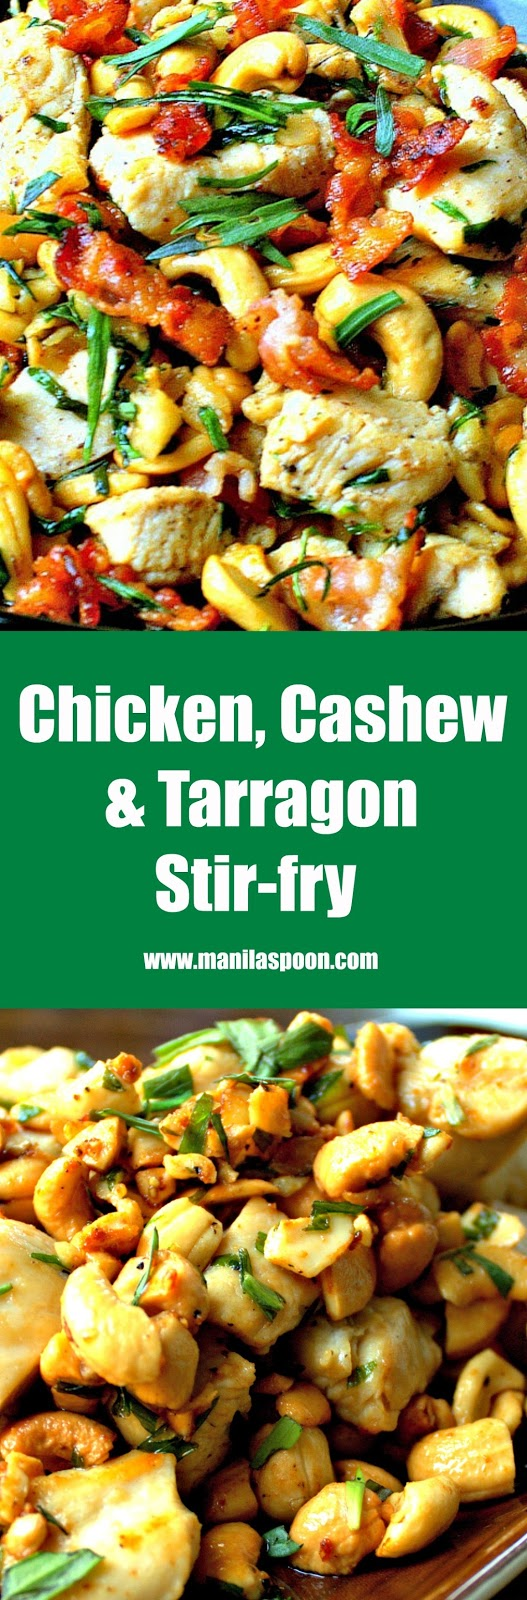 My mother-in-law passed on this recipe to us as my hubby loves this dish! So easy to make, quick and seriously delicious, too! Gluten-free and low-carb, too. Chicken, Cashew and Tarragon Stir-fry (with Bacon) | www.manilaspoon.com